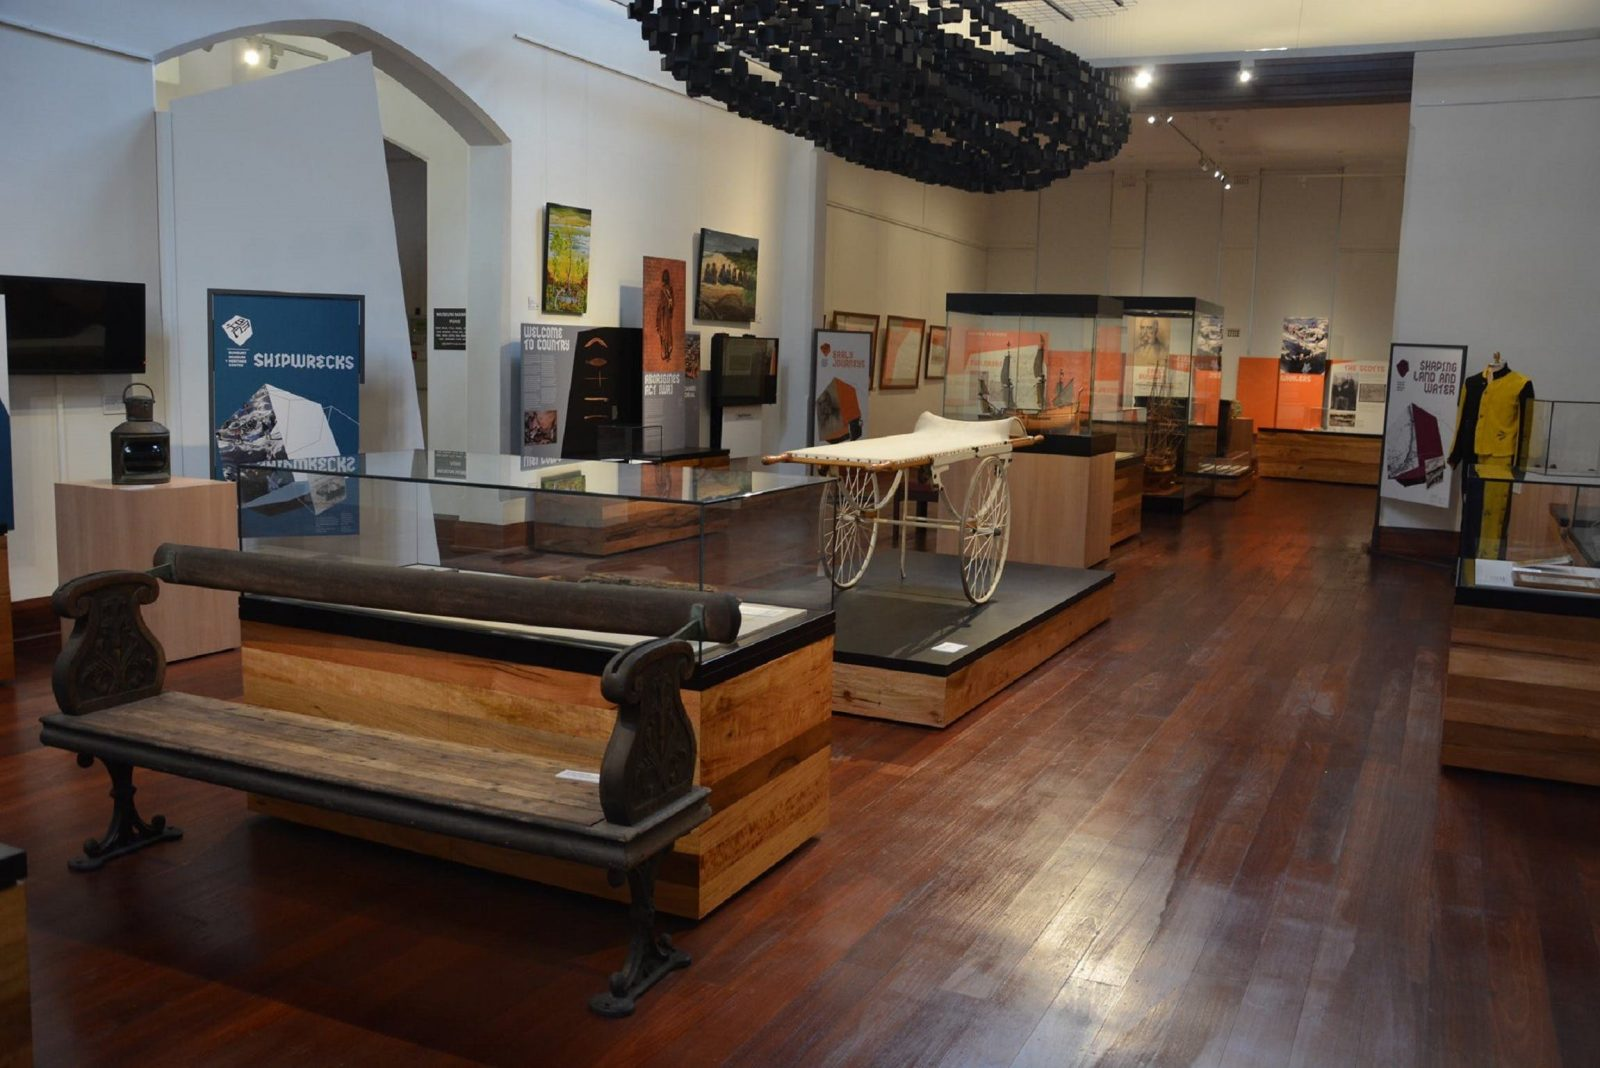 Bunbury Museum and Heritage Centre, Bunbury, Western Australia